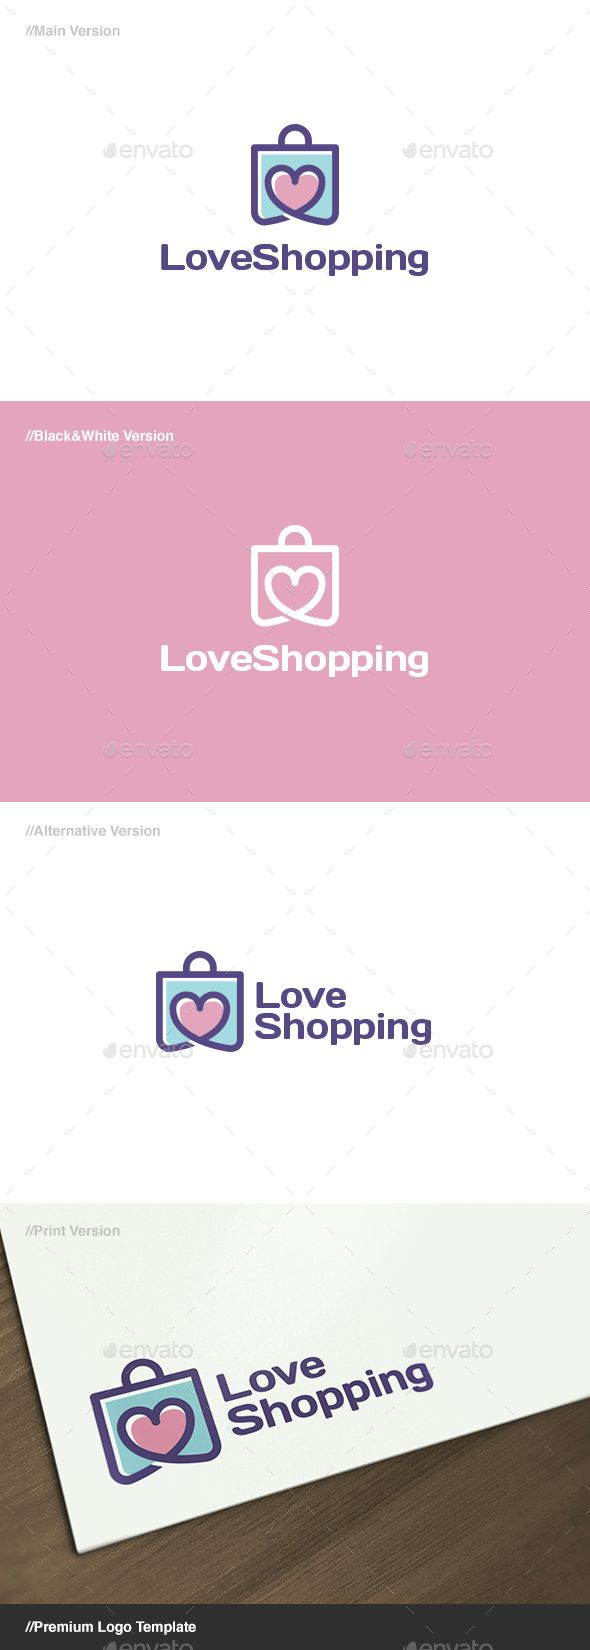 Love Shopping: is a logo that can be used in shopping websites, software and applications shopping, shopping blogs, among other us